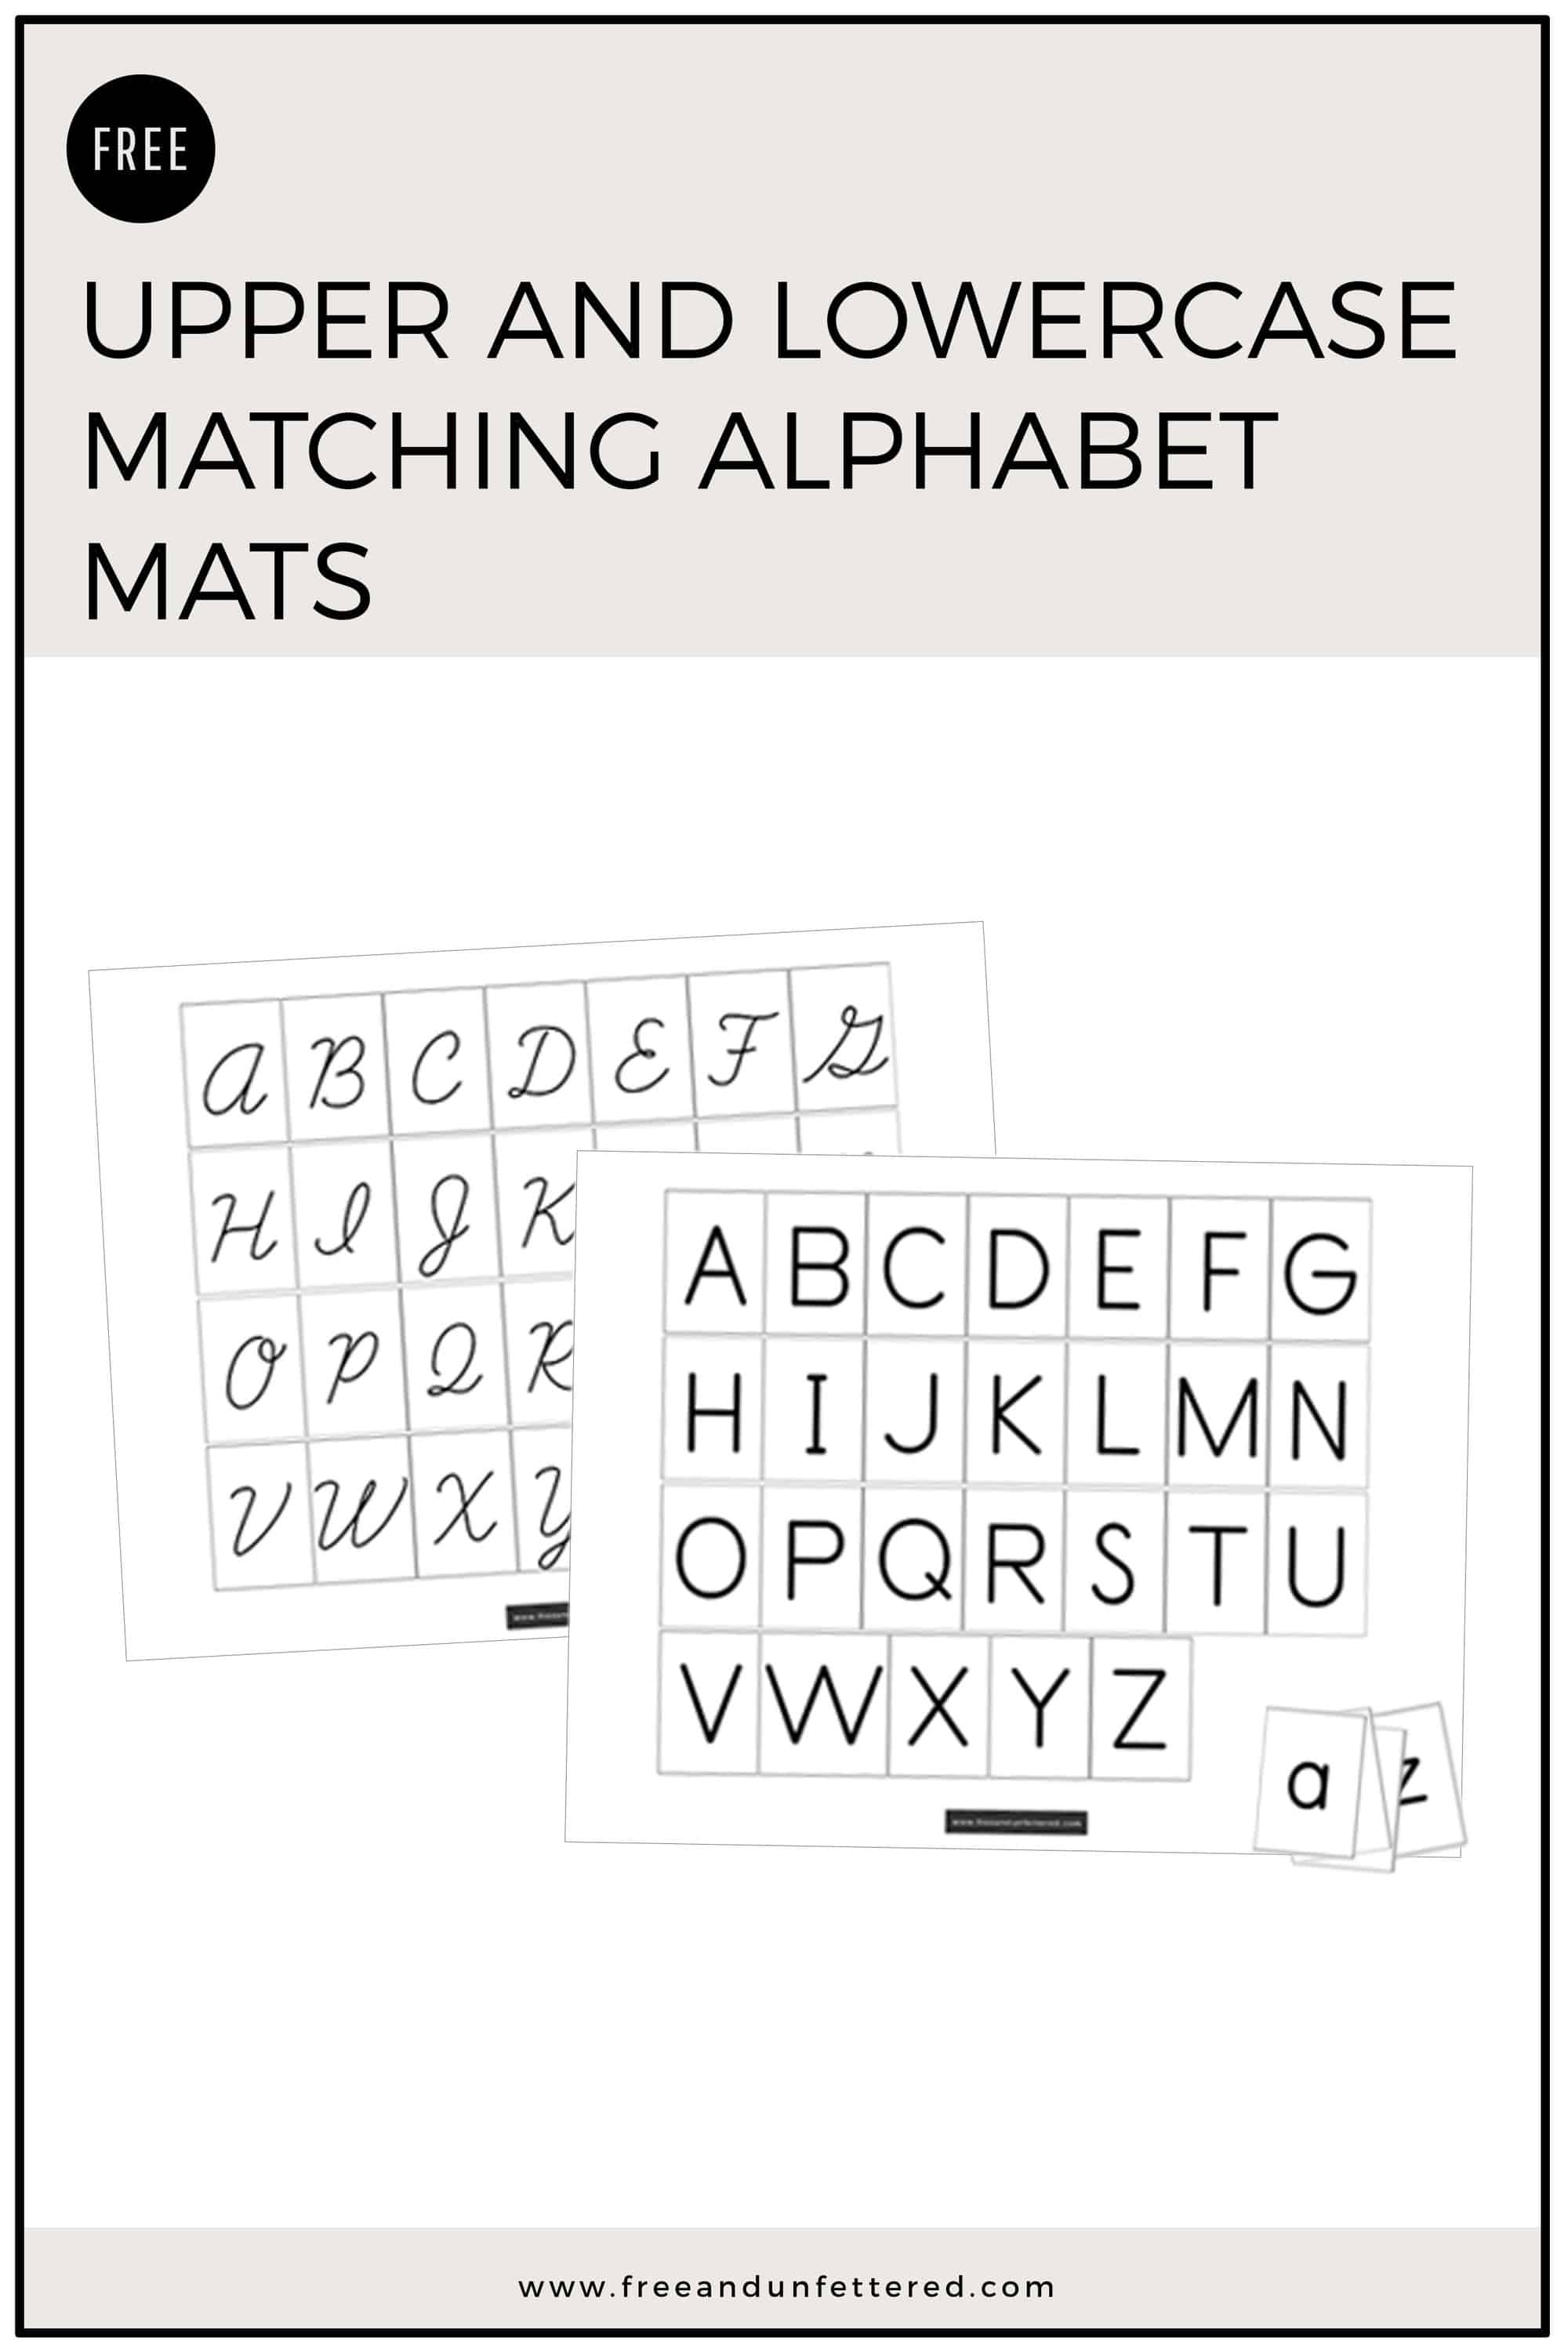 Increase your child's familiarity with the corresponding lowercase and uppercase letters of the alphabet with this simple matching work. It's available in both print and cursive for your convenience. Learn more about this free printable at www.freeandunfettered.com. #montessoriathome #montessorihomeschooling #ece #earlyliteracy